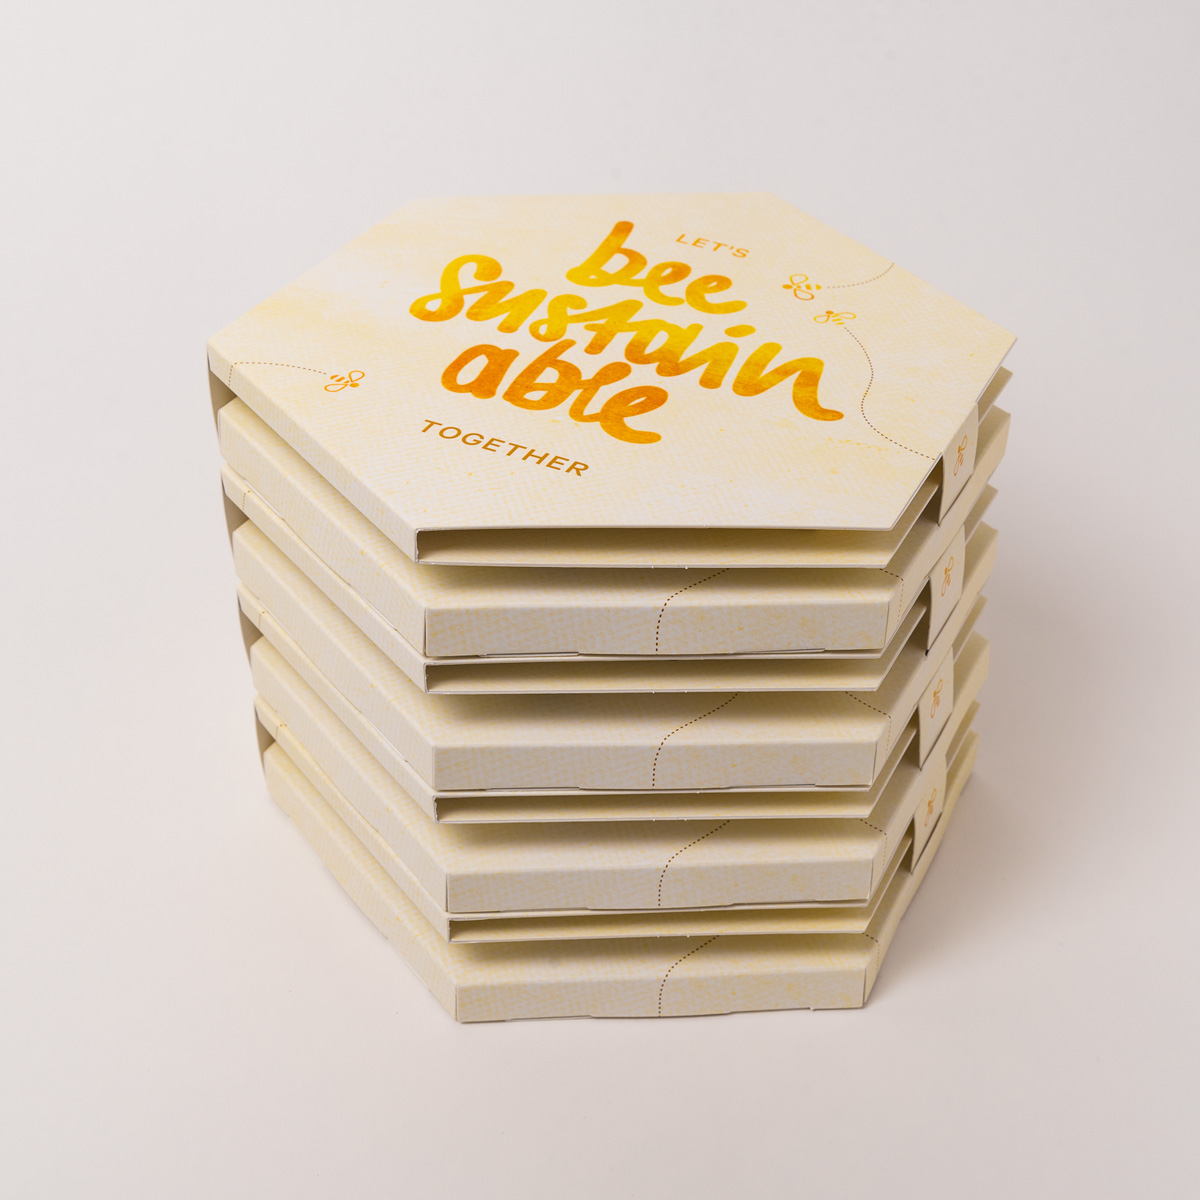 Toppits Beeswax Wraps Box Beehive